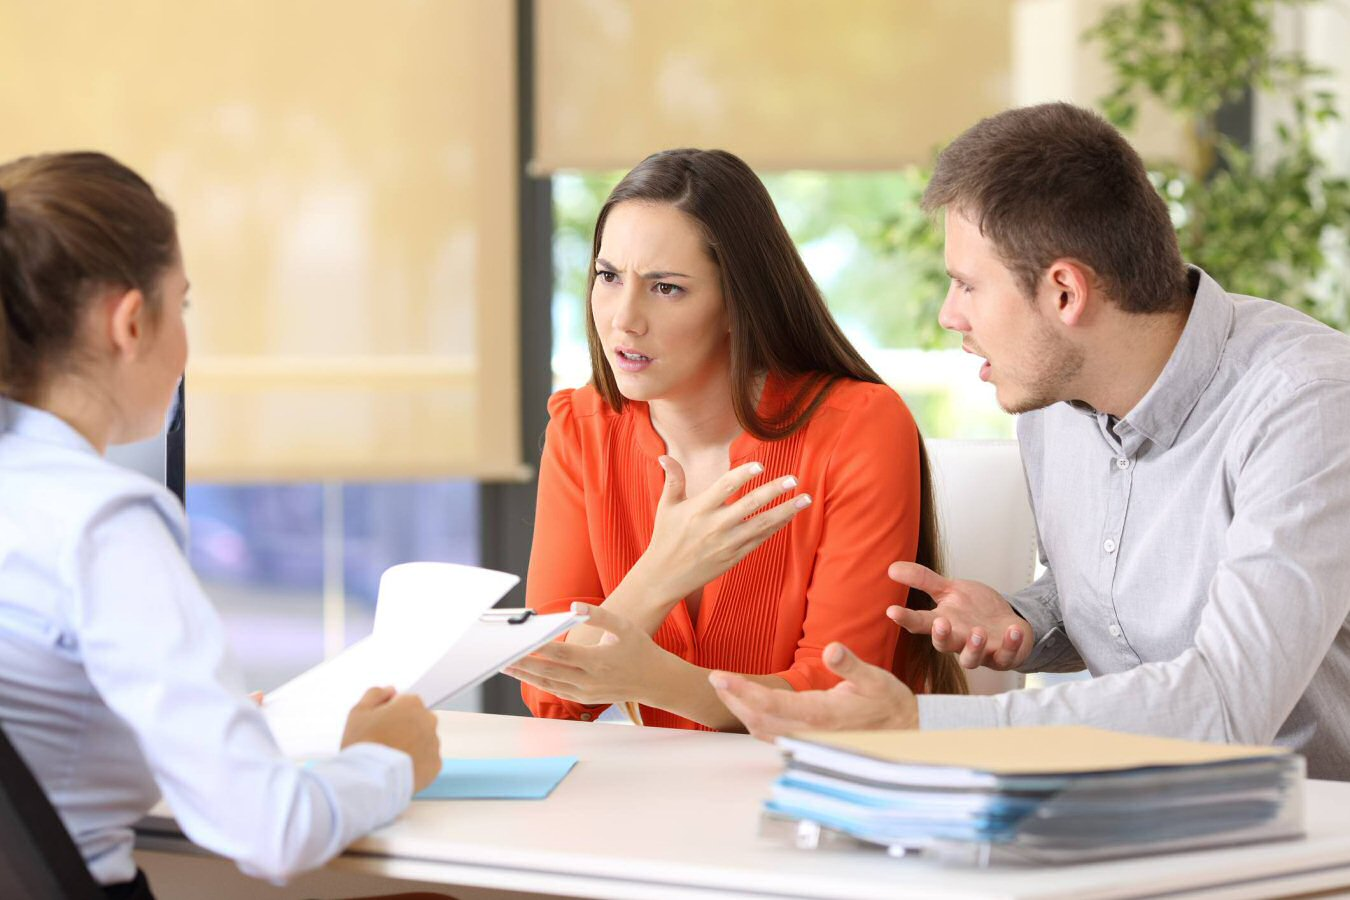 Getting Professional Support During Divorce